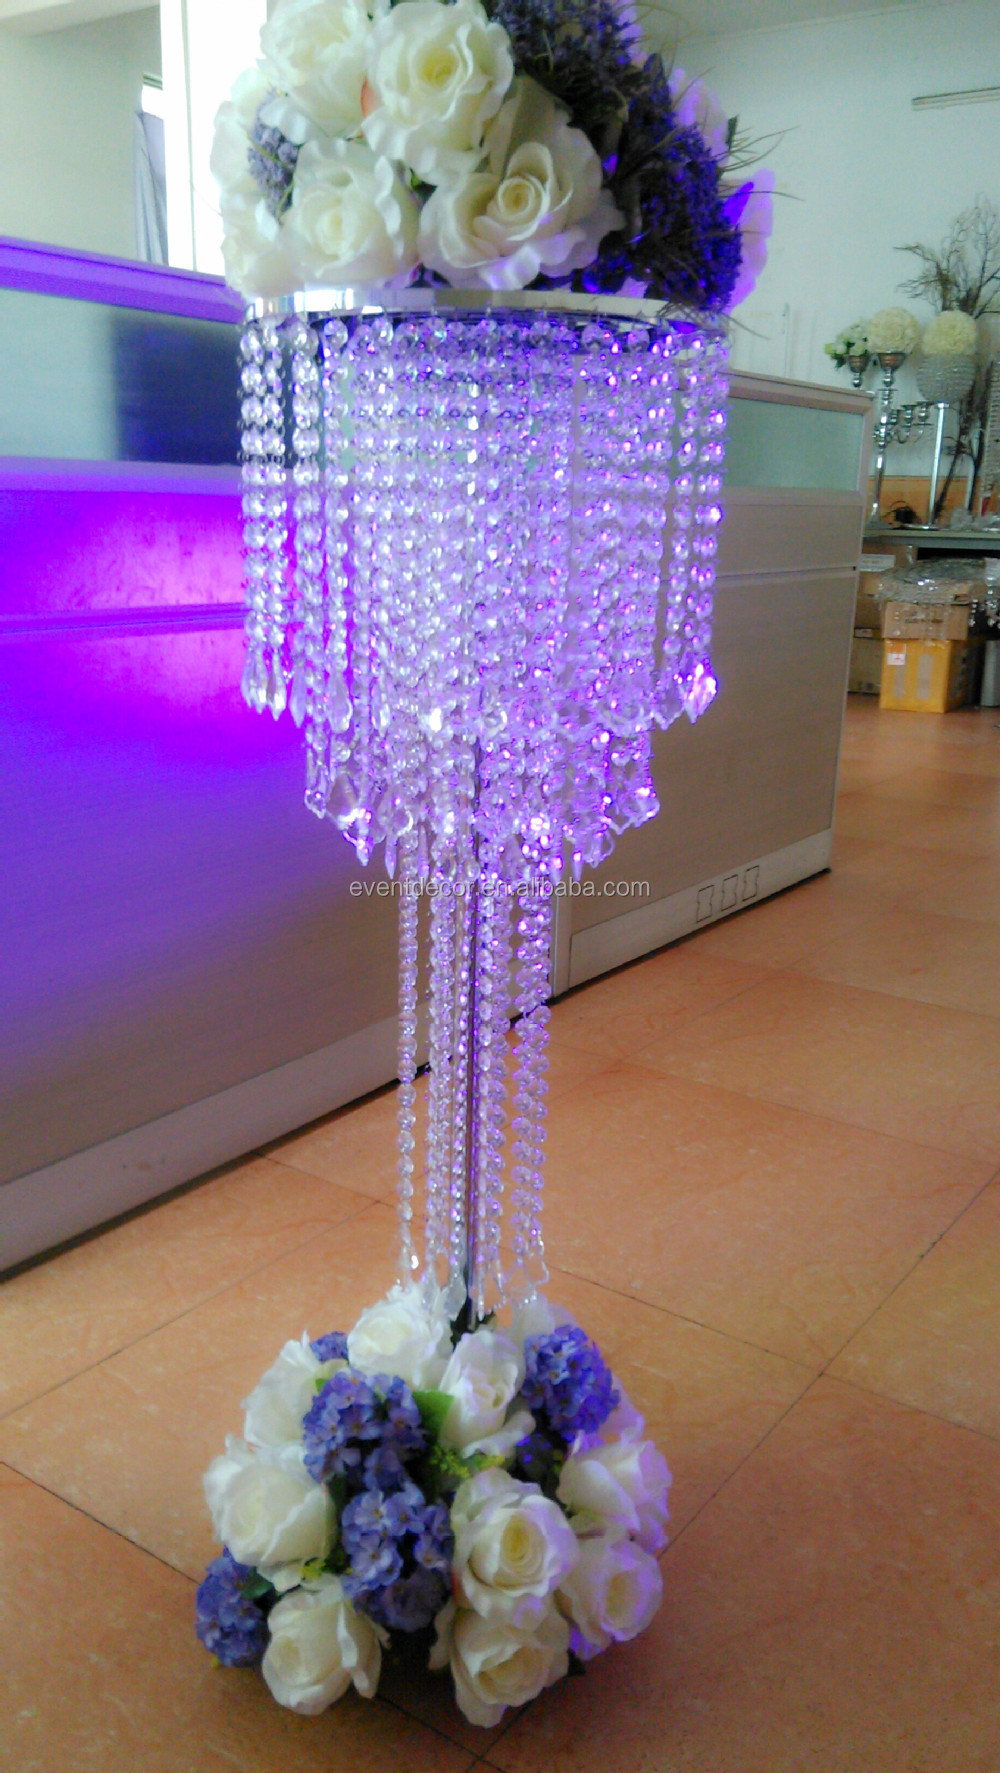 Large Crystal Chandelier Table Top Centerpieces For ...